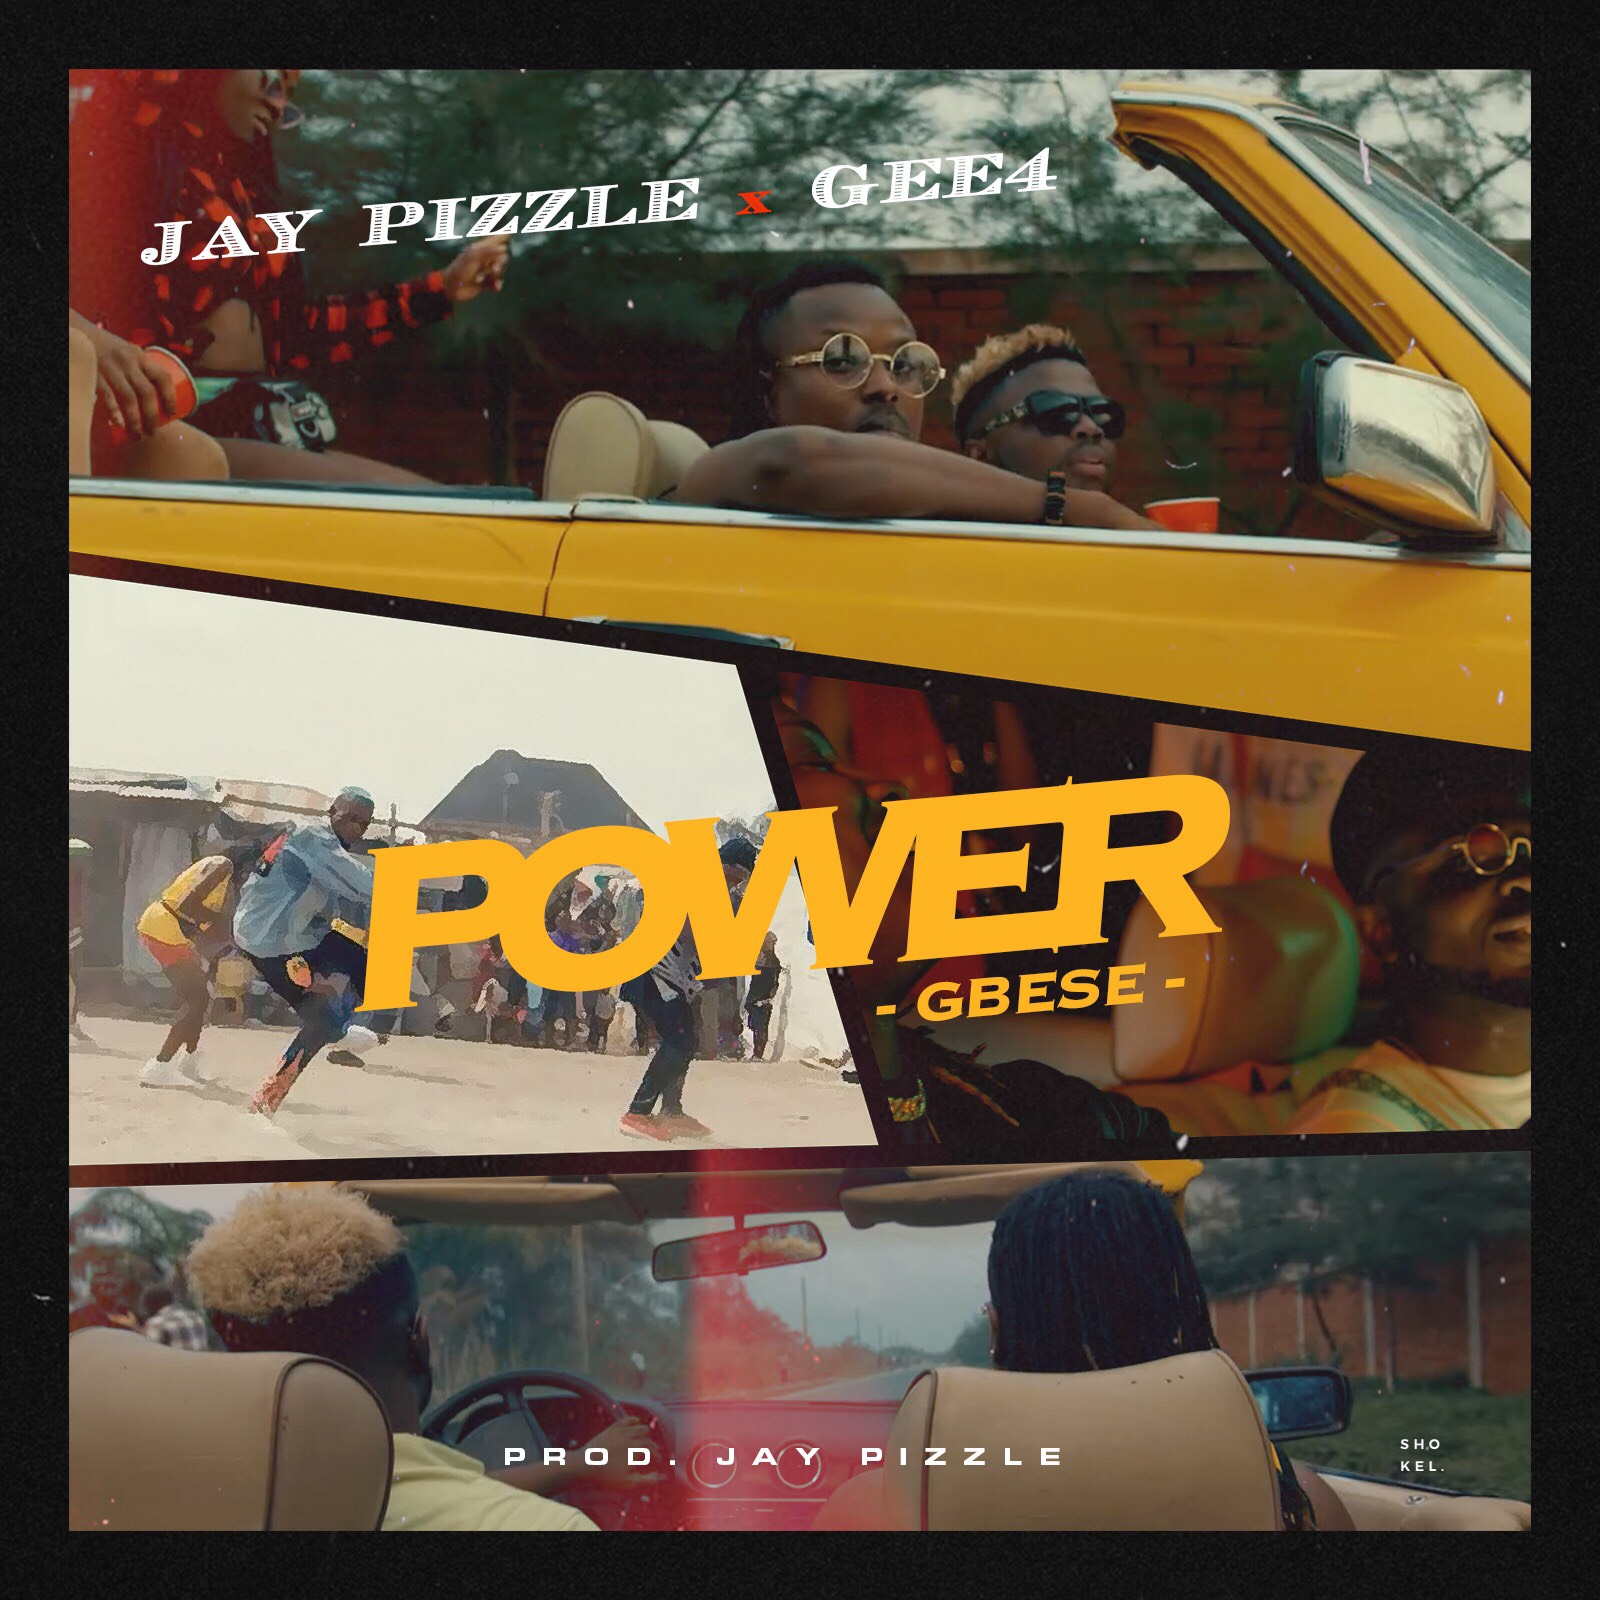 VIDEO: JayPizzle ft. Gee 4 – Power (Gbese)